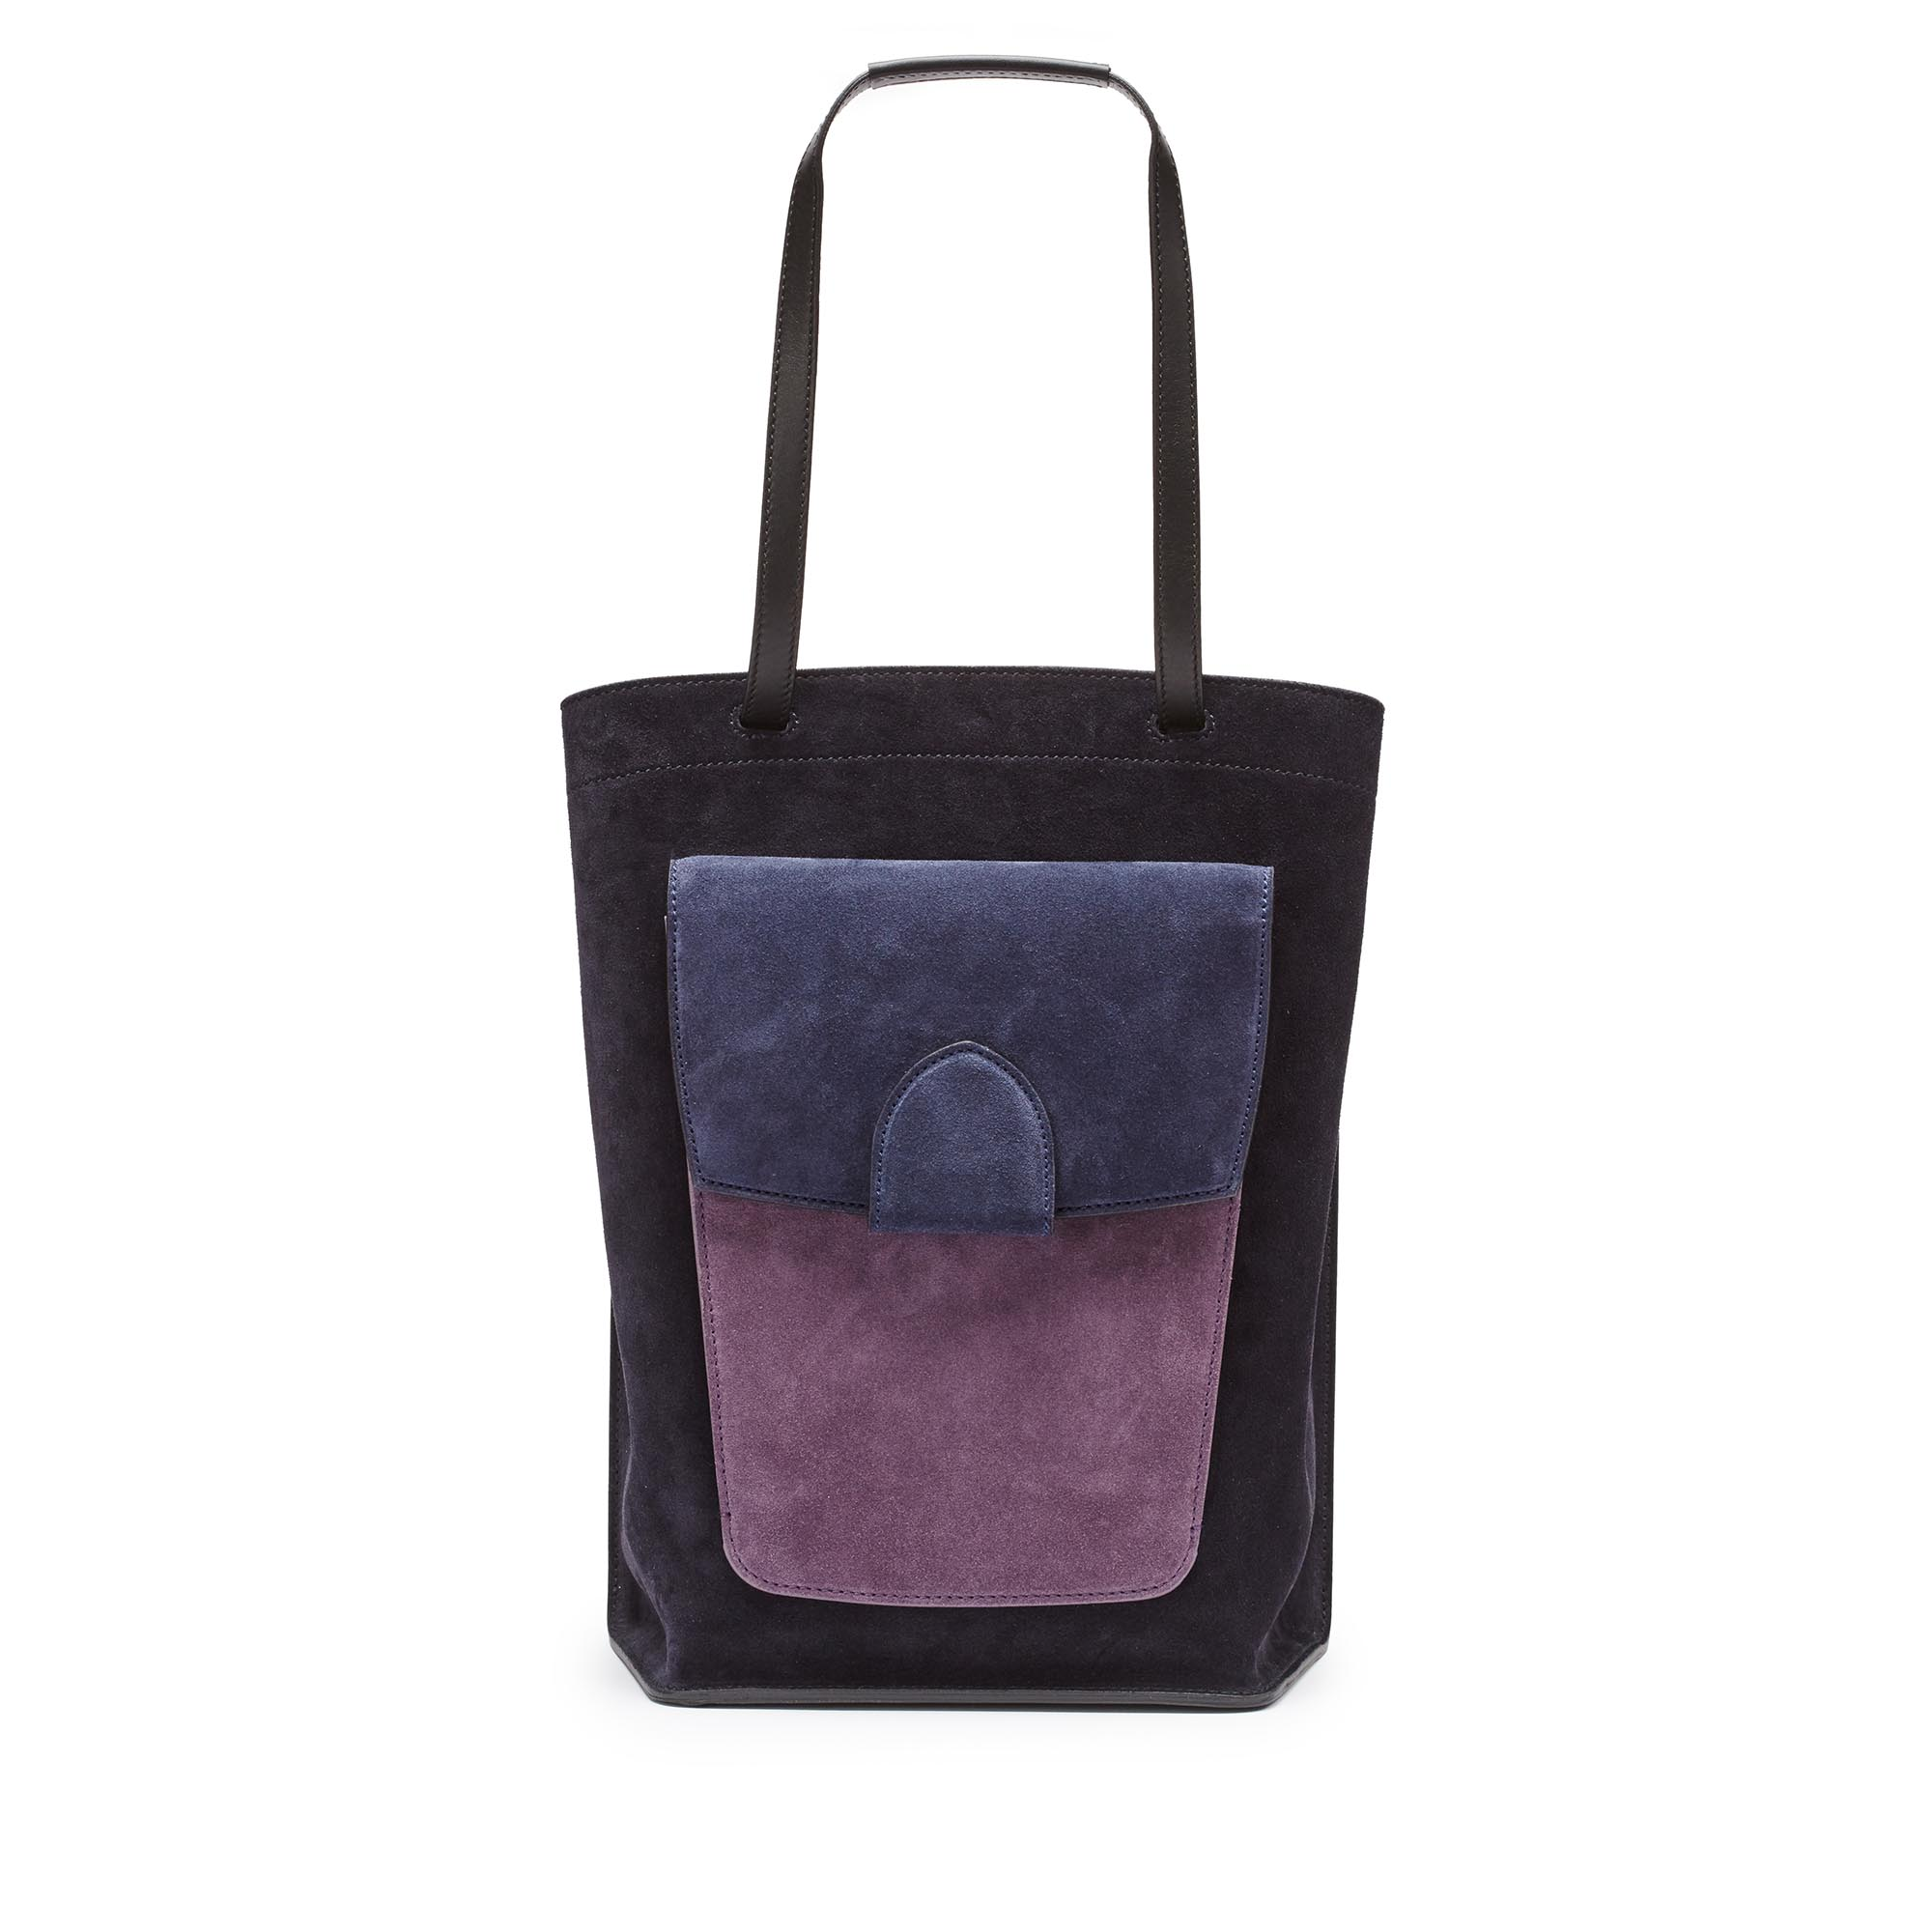 Arizona-black-navy-purple-suede-bag-Bertoni-1949_01